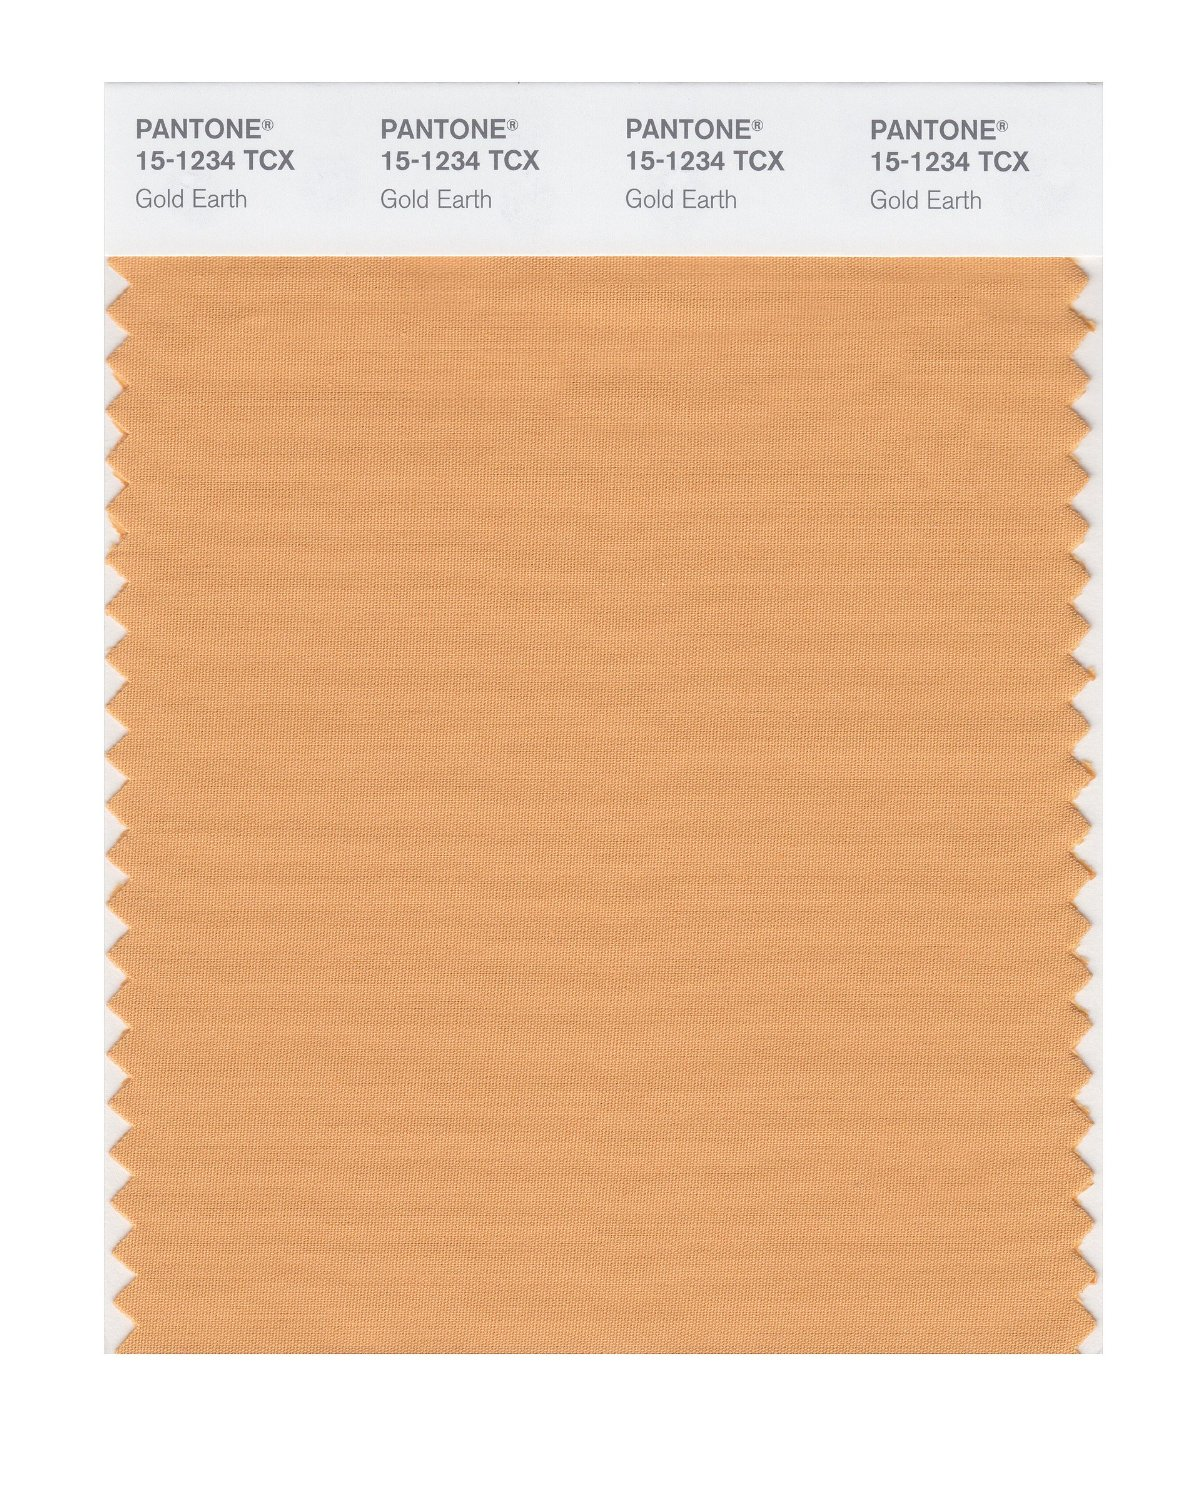 Pantone Smart Swatch 15-1234 Gold Earth